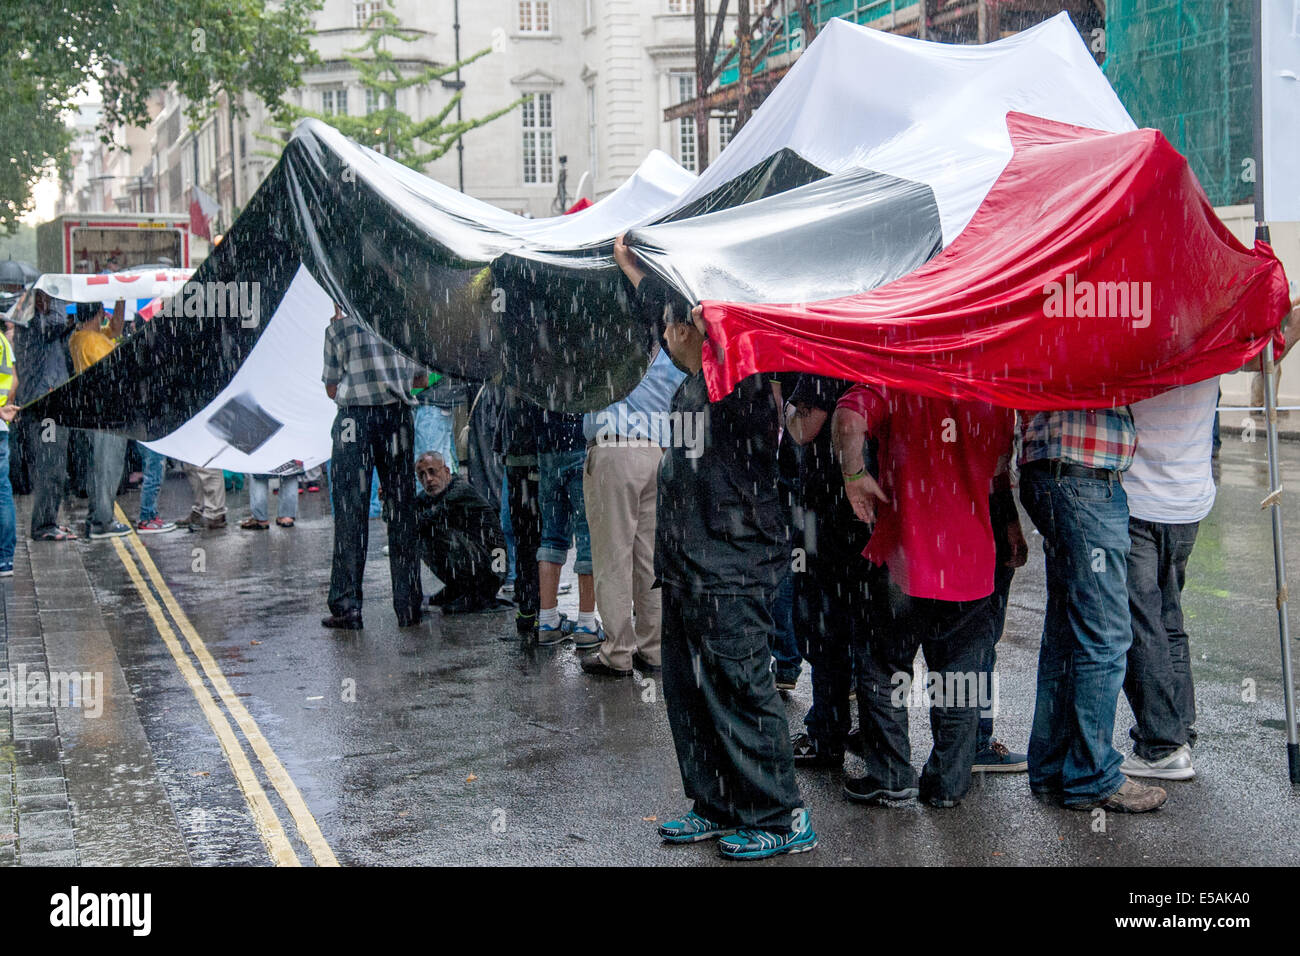 London, UK. 25th July, 2014. Protesters shelter from the rain under a large Palestinian Flag as thousands hold a - Stock Image